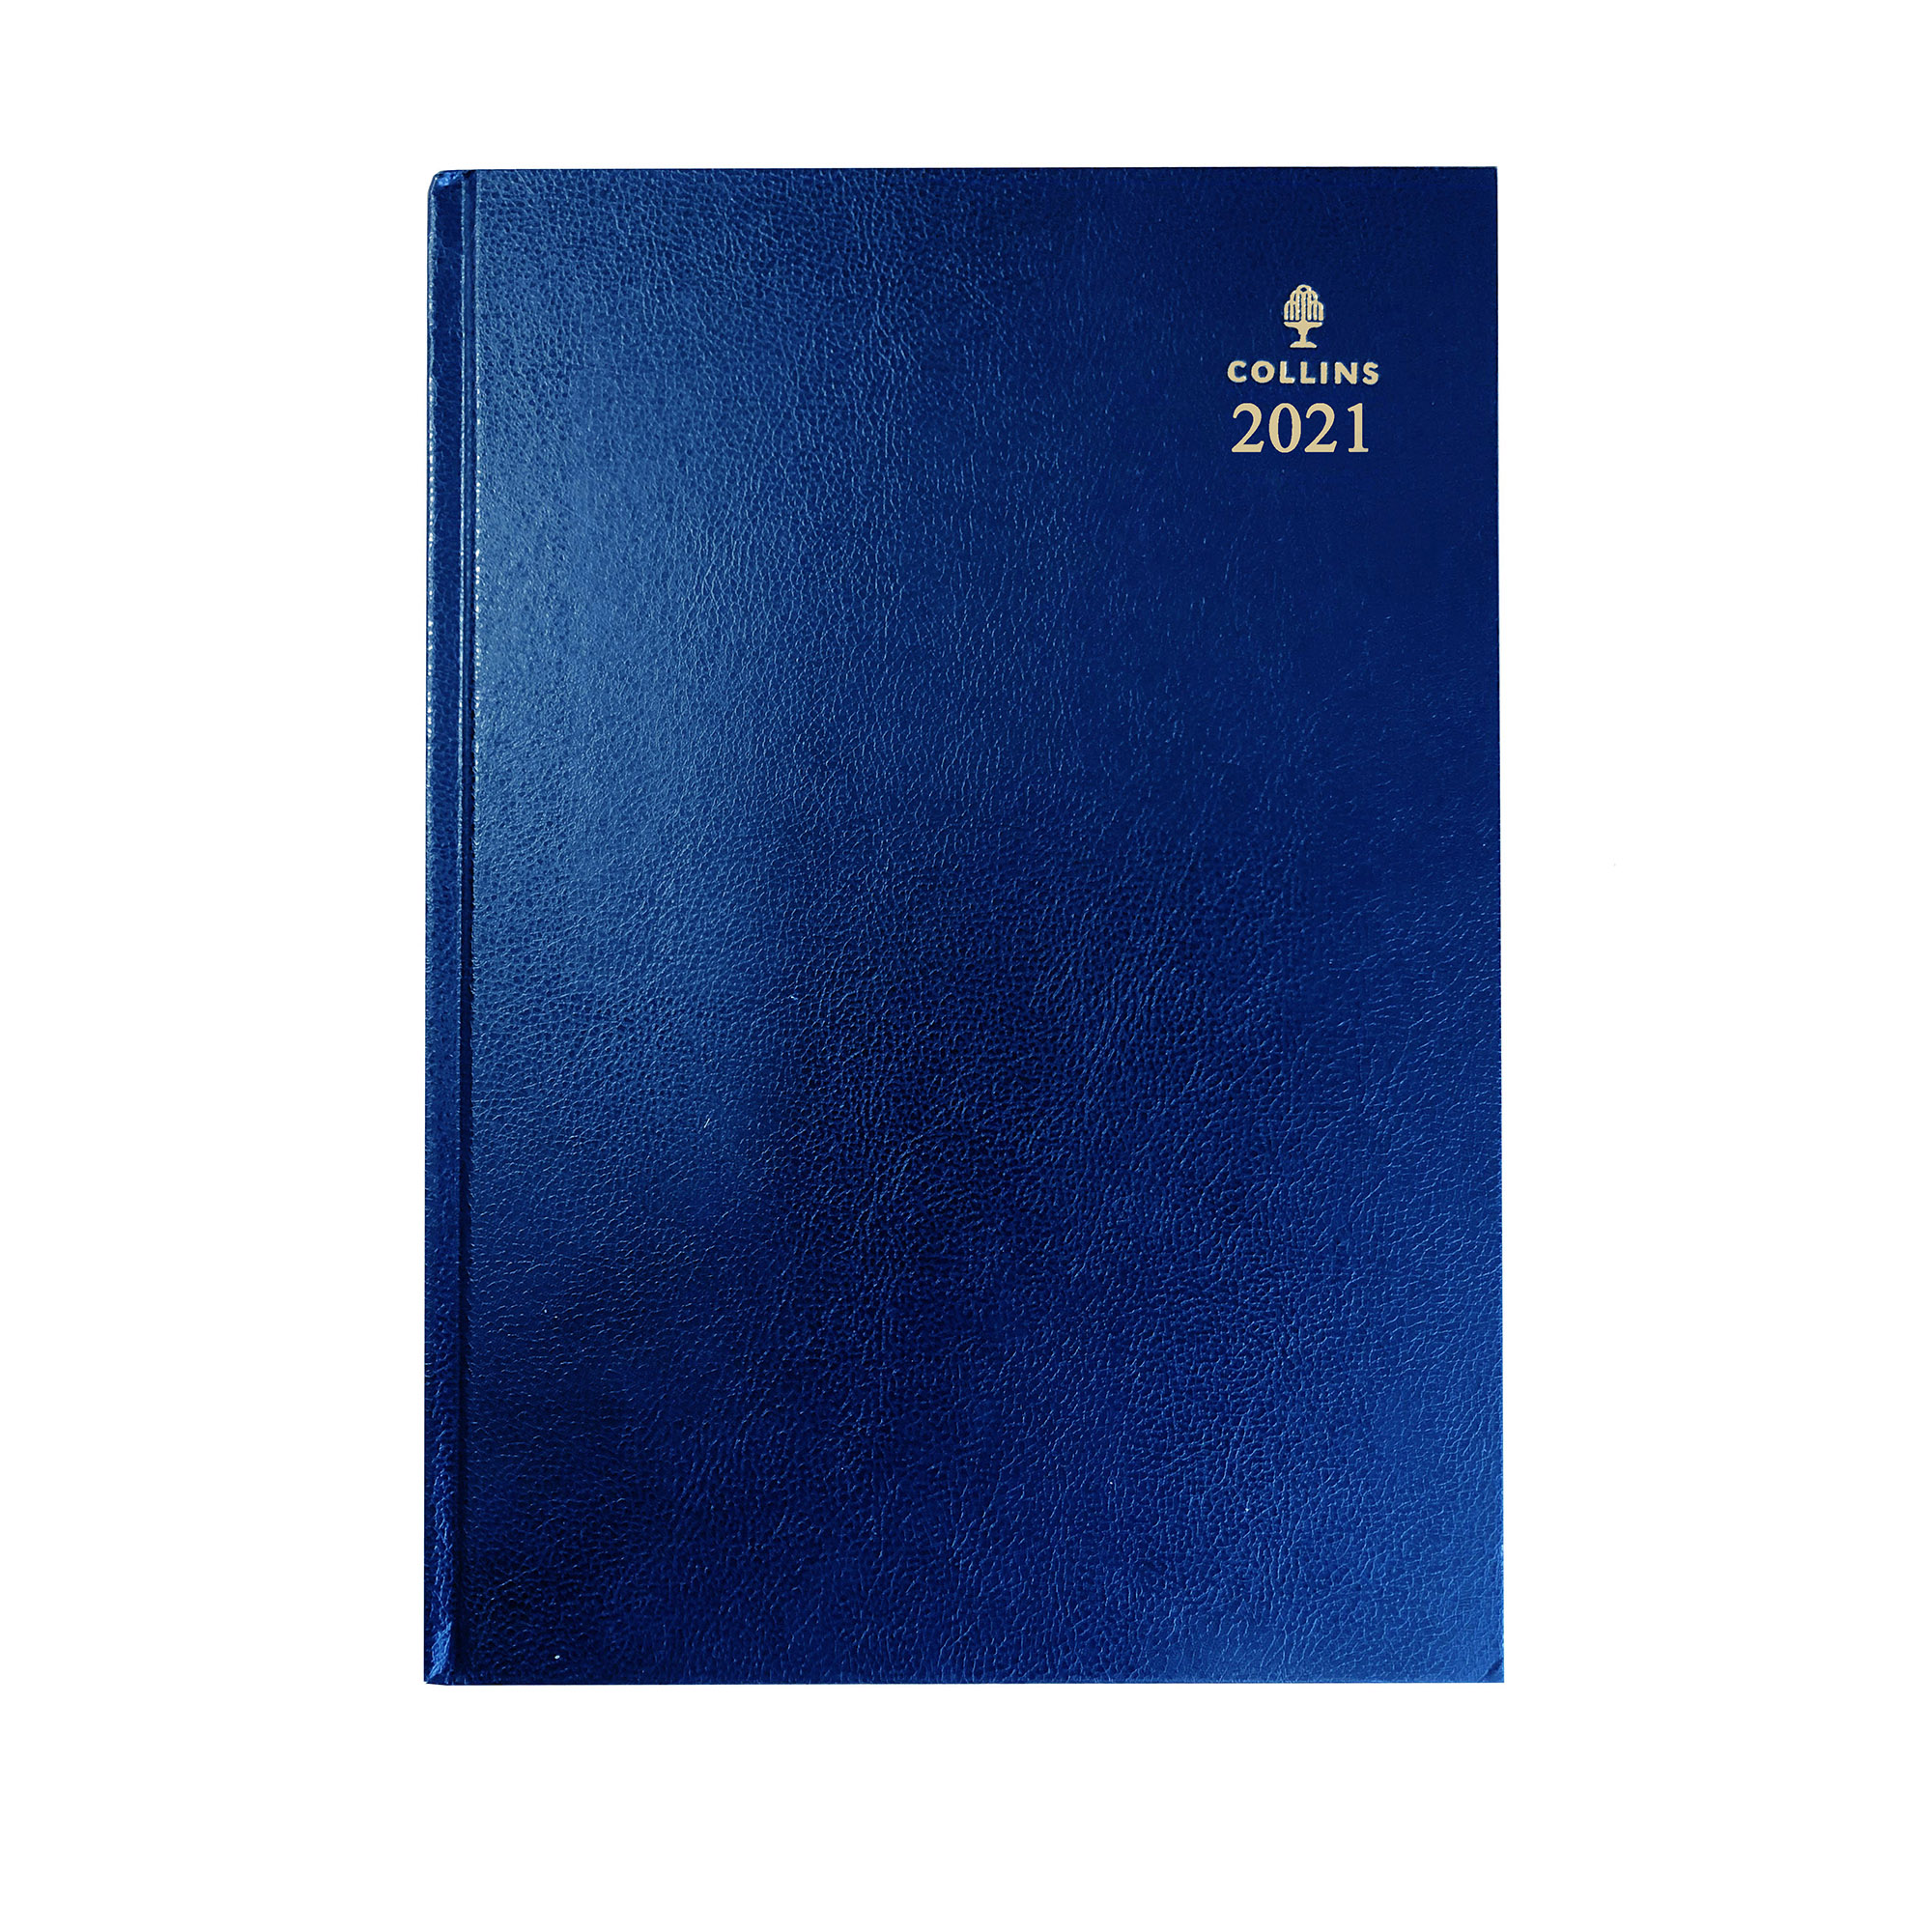 Diaries Collins 2021 Desk Diary Week to View Sewn Binding A4 297x210mm Blue Ref 40 Blue 2021